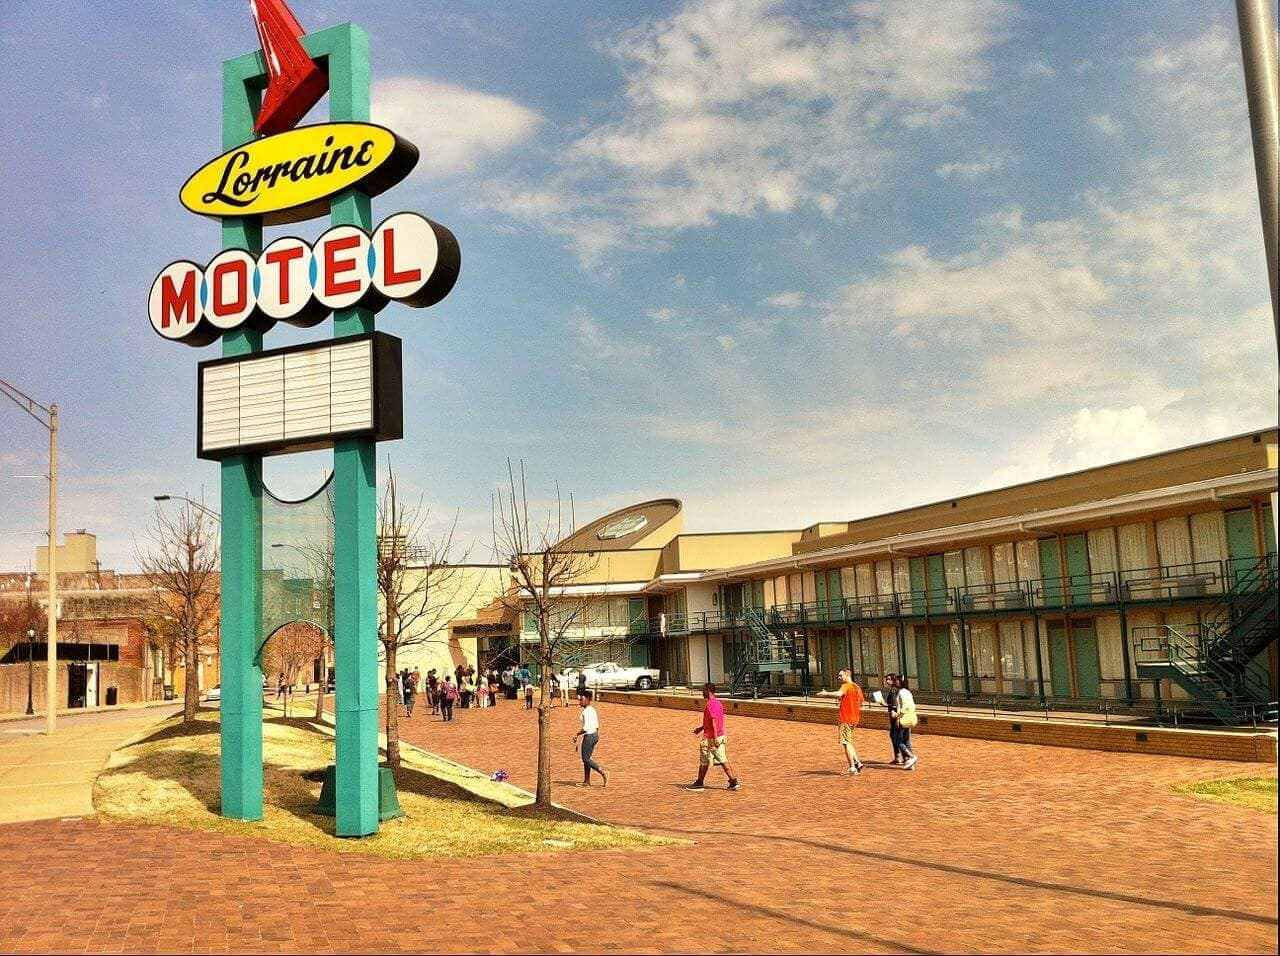 The Lorraine Motel in Memphis, current day.